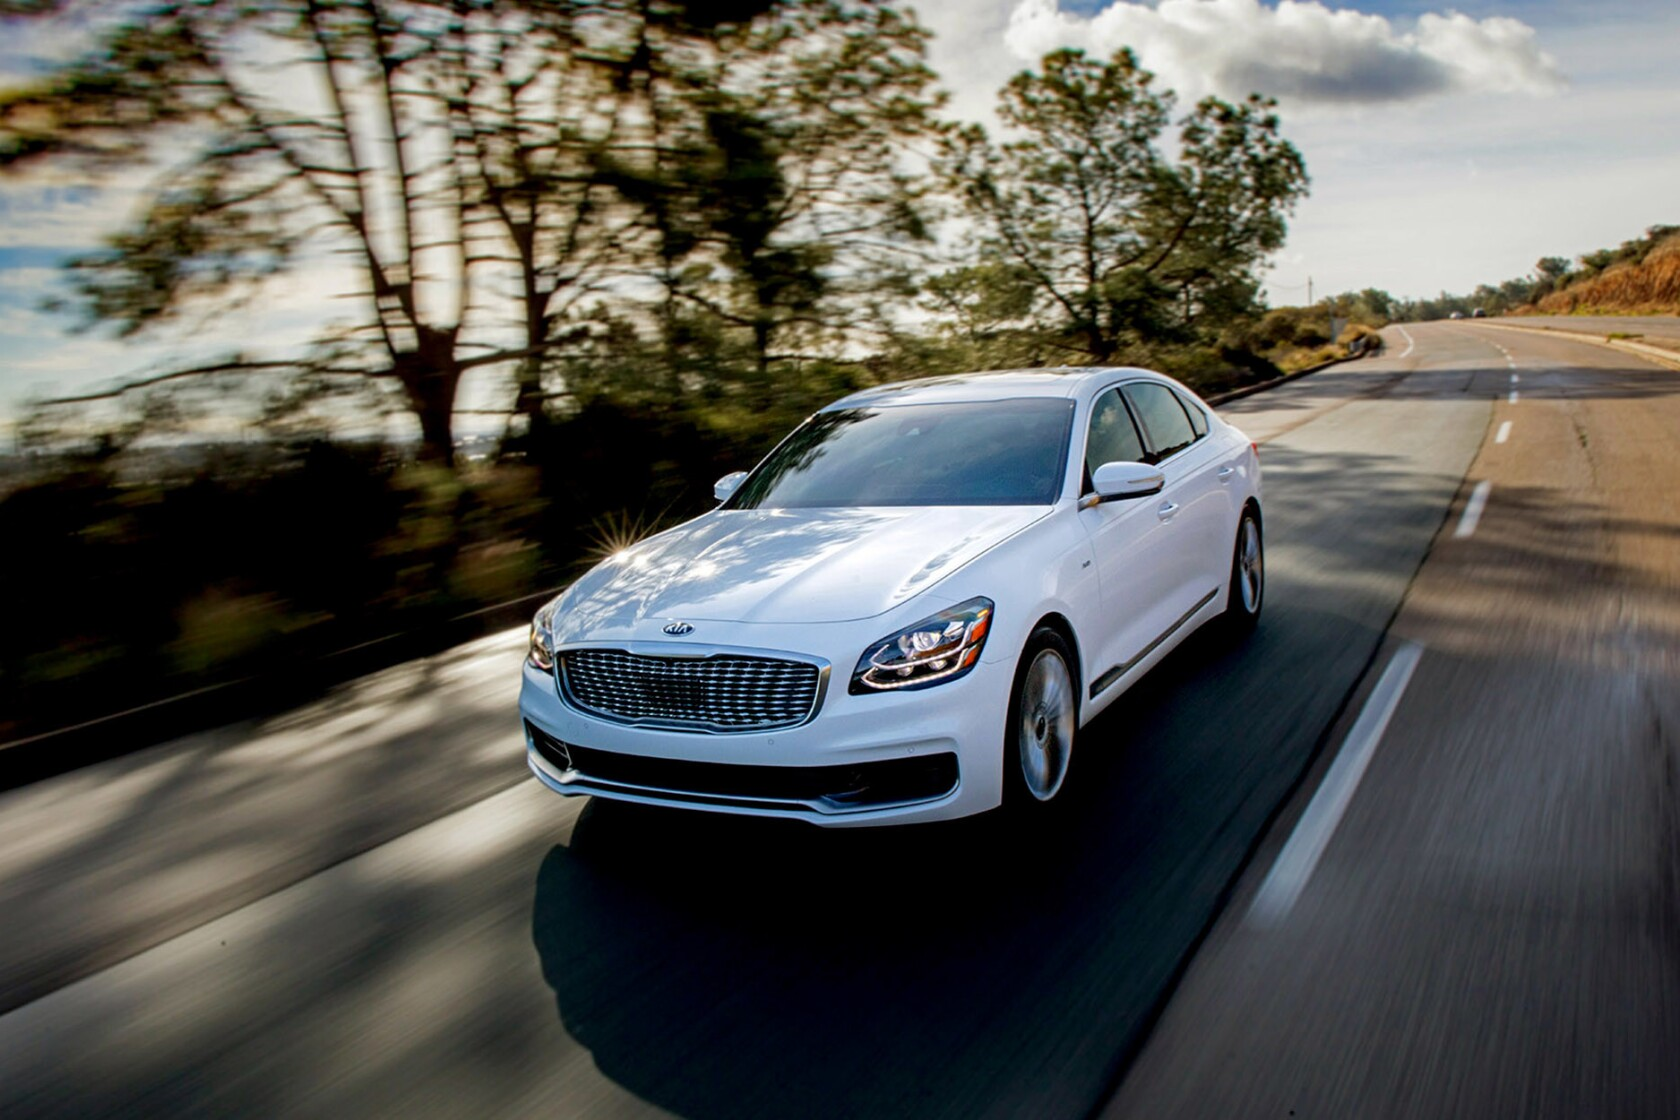 Kia's new K900 is good — maybe too good for its nameplate